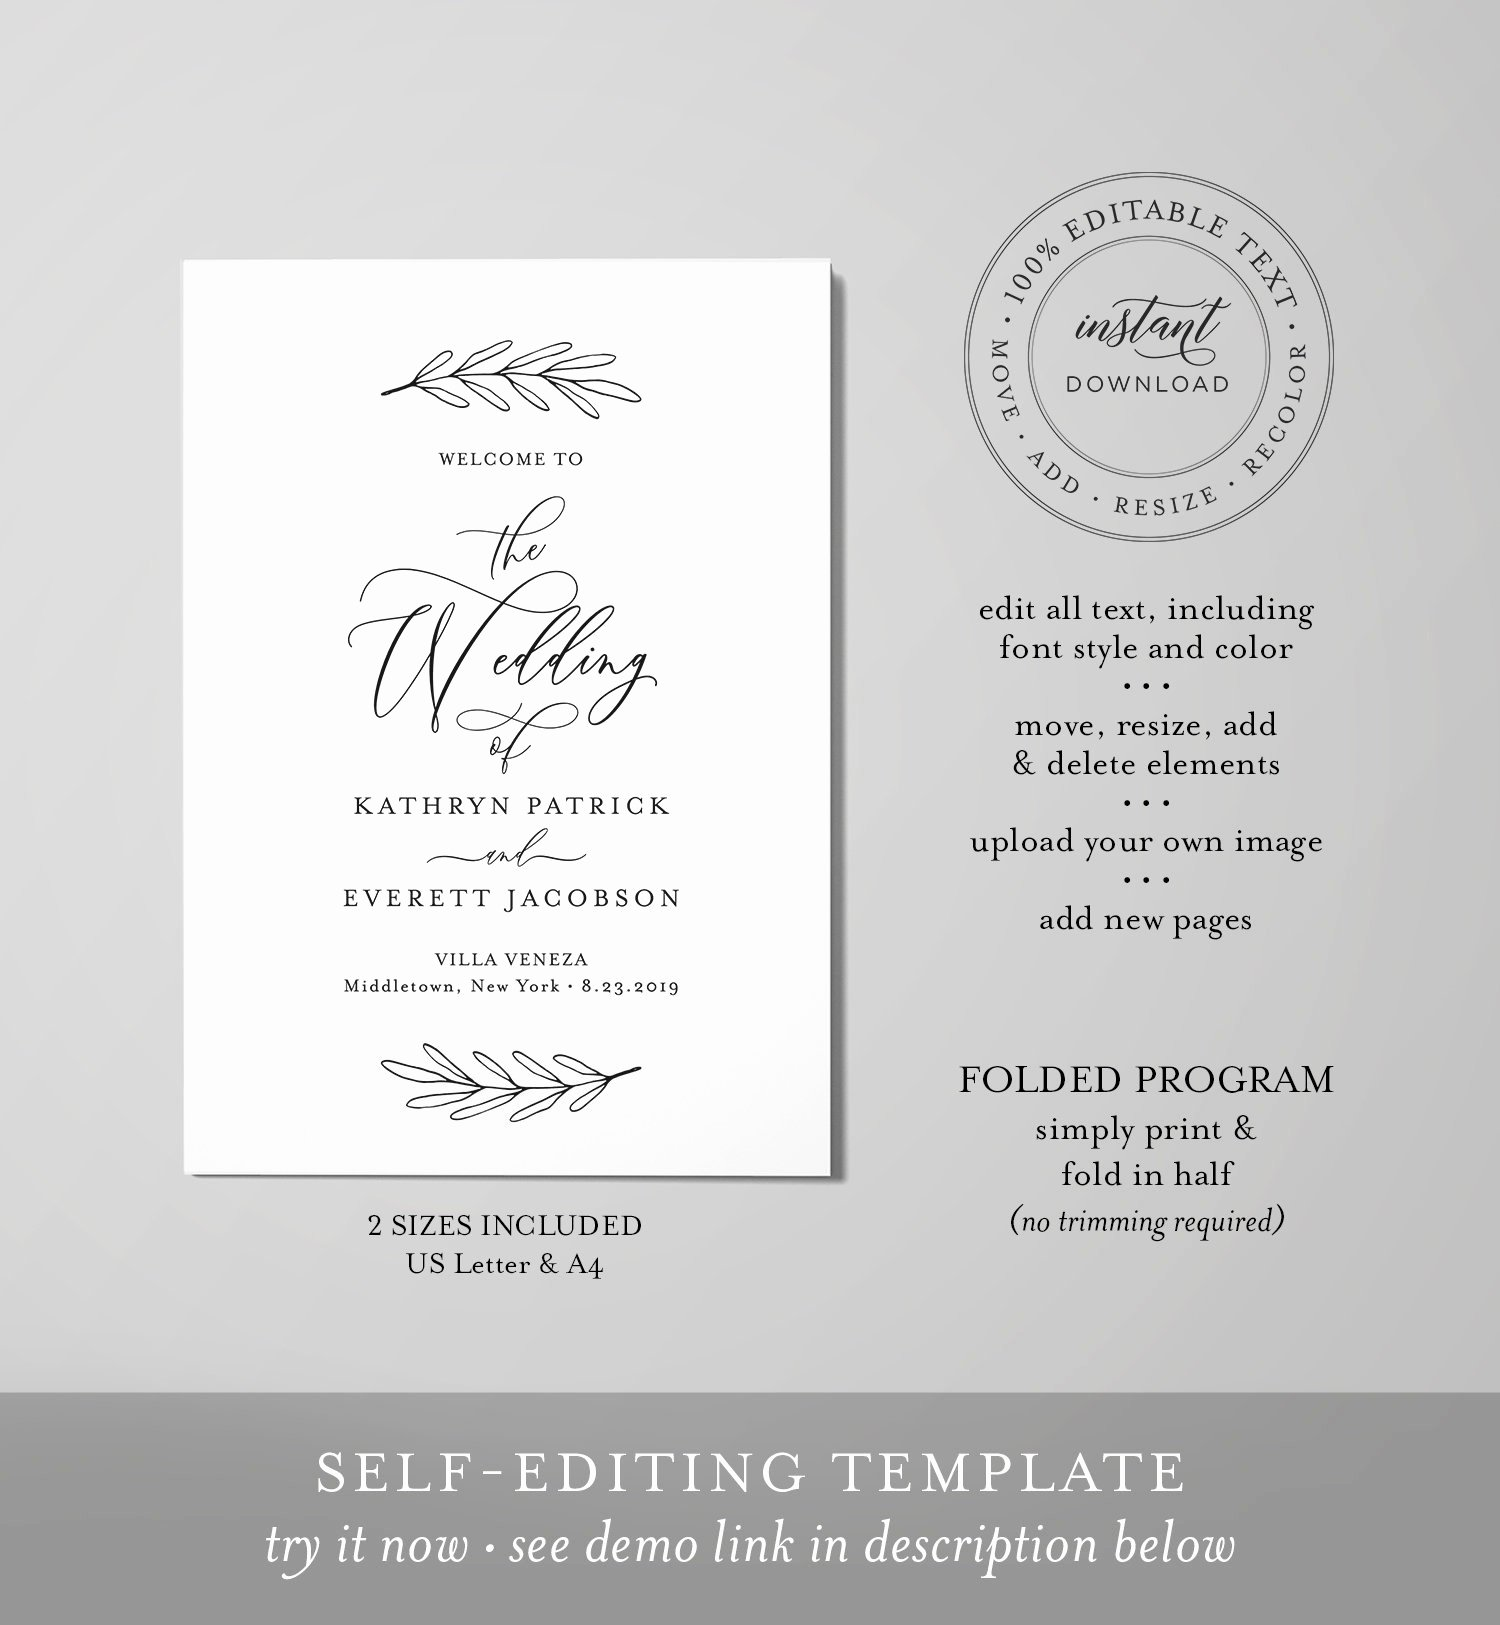 Bi Fold Program Template Awesome Bi Fold Wedding Program Template Minimalist order Of